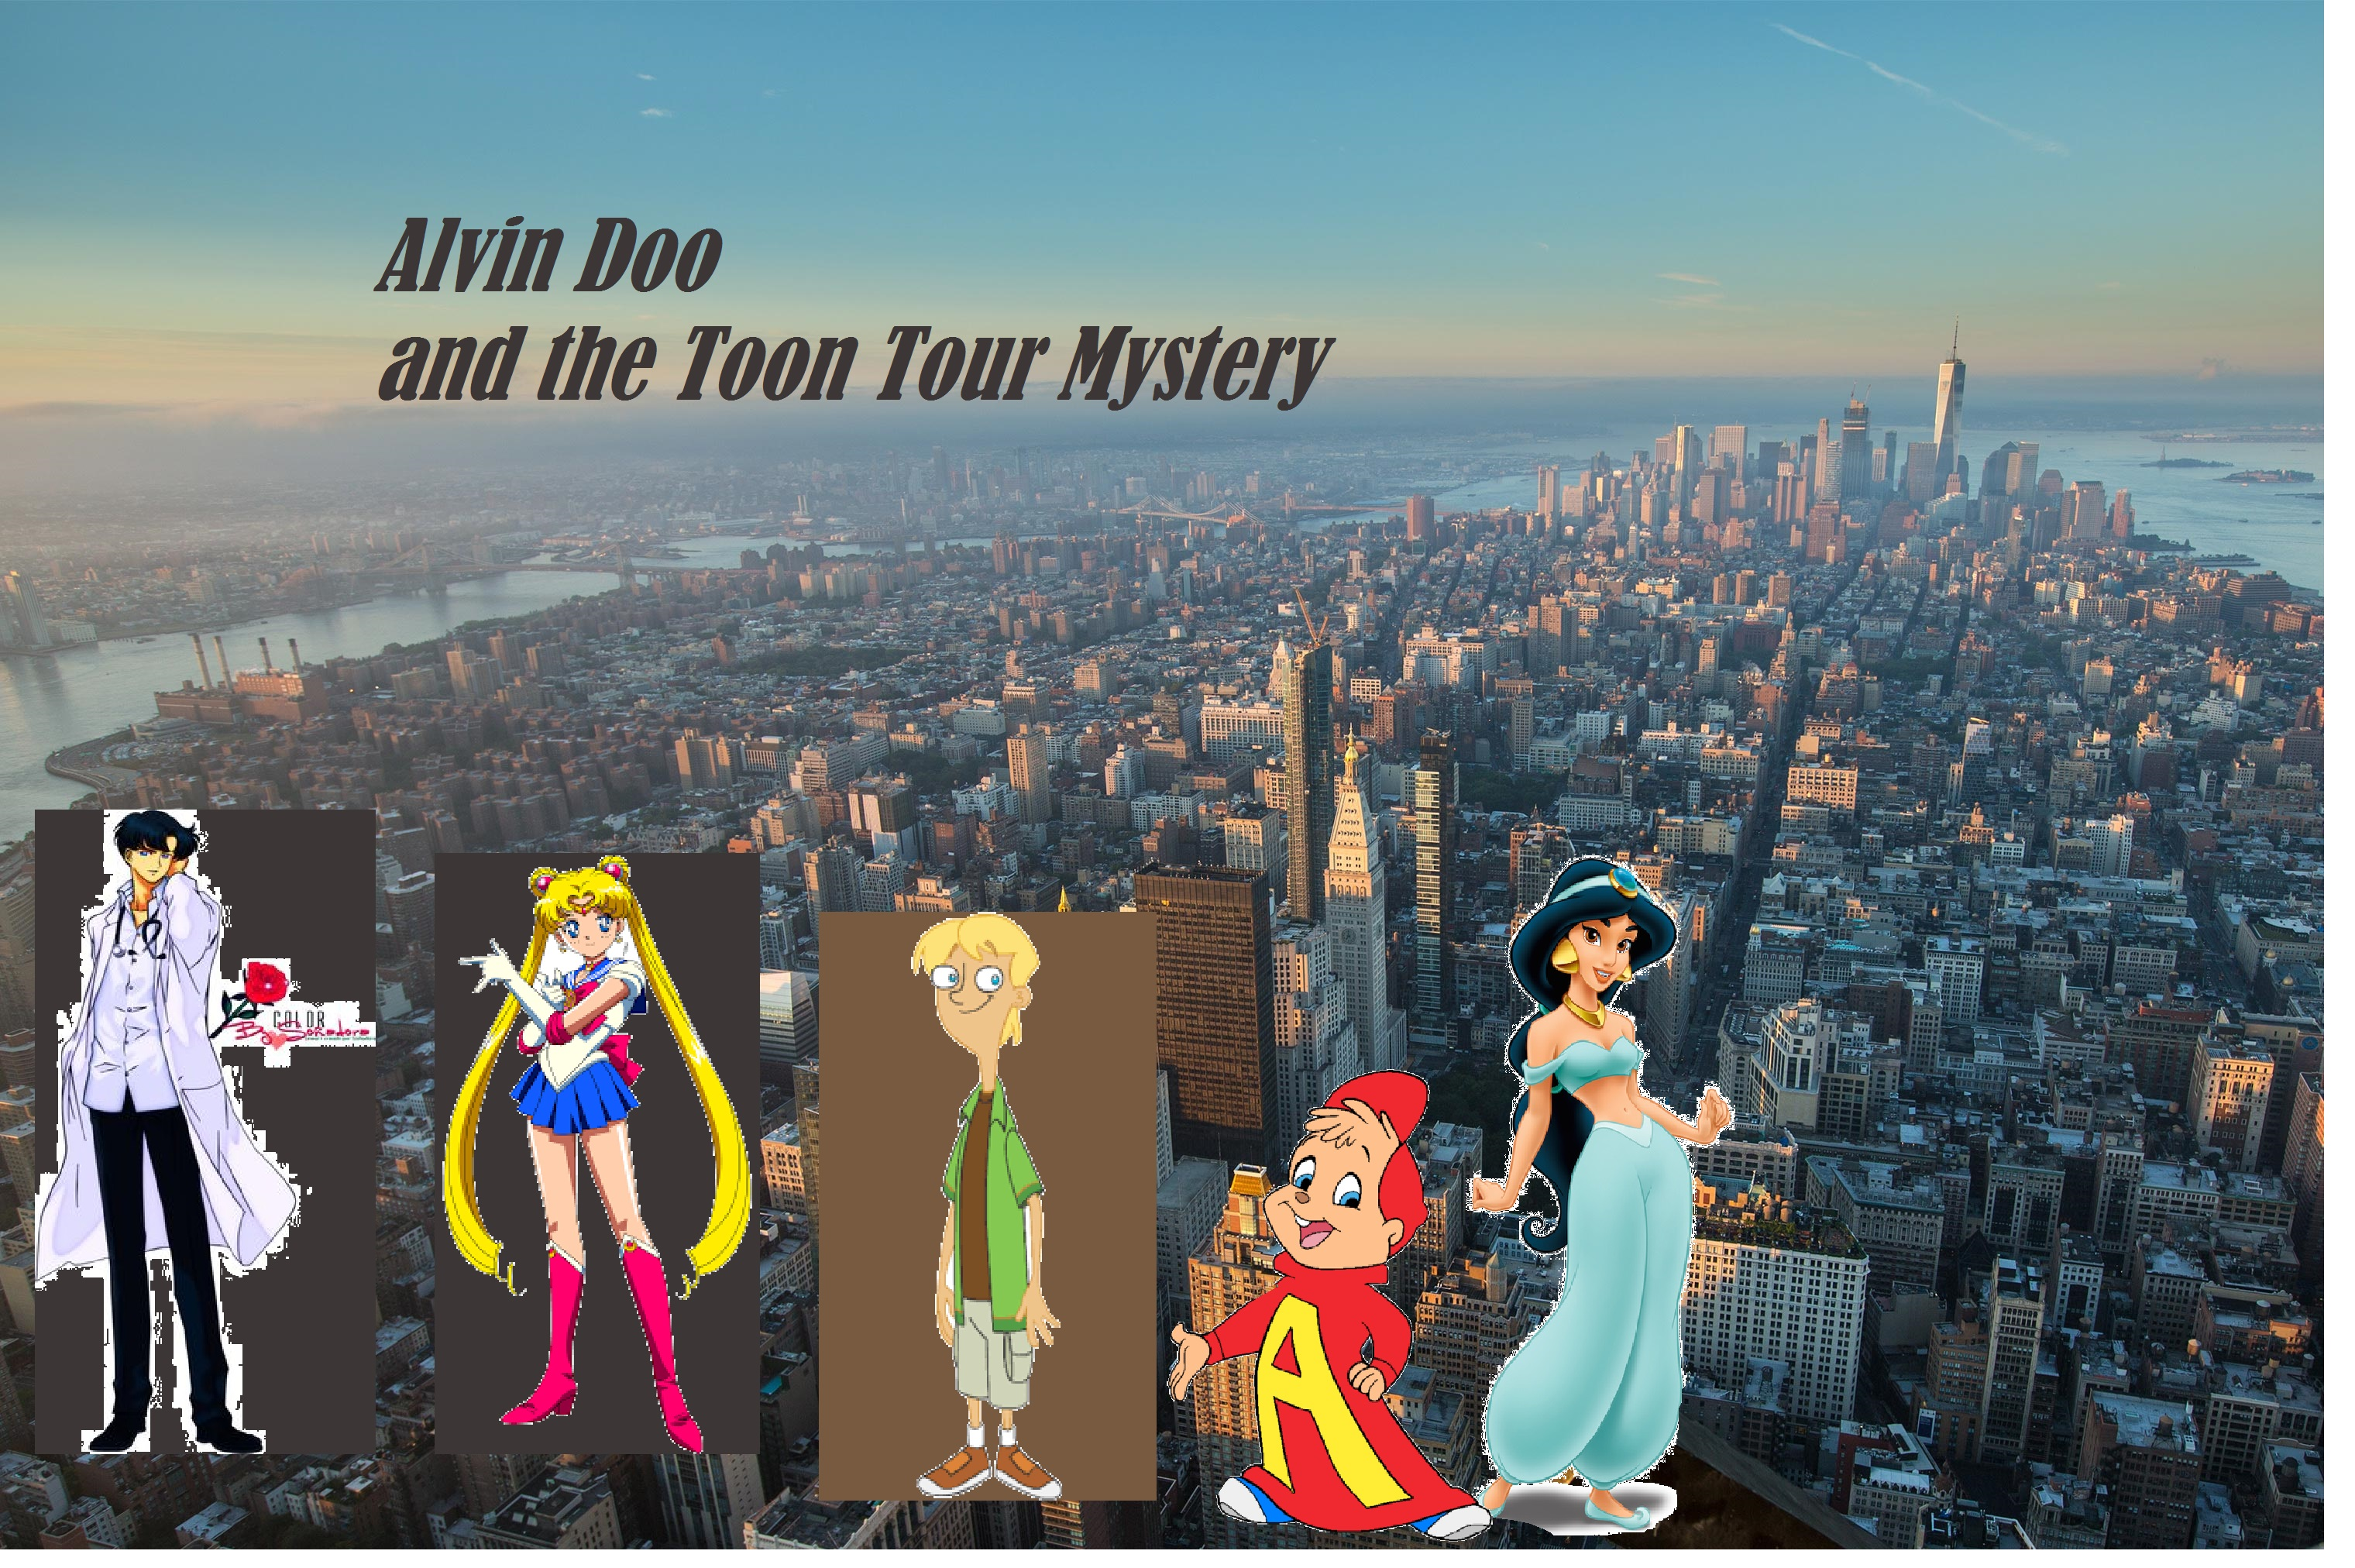 Alvin Doo and the Toon Tour of Mysteries